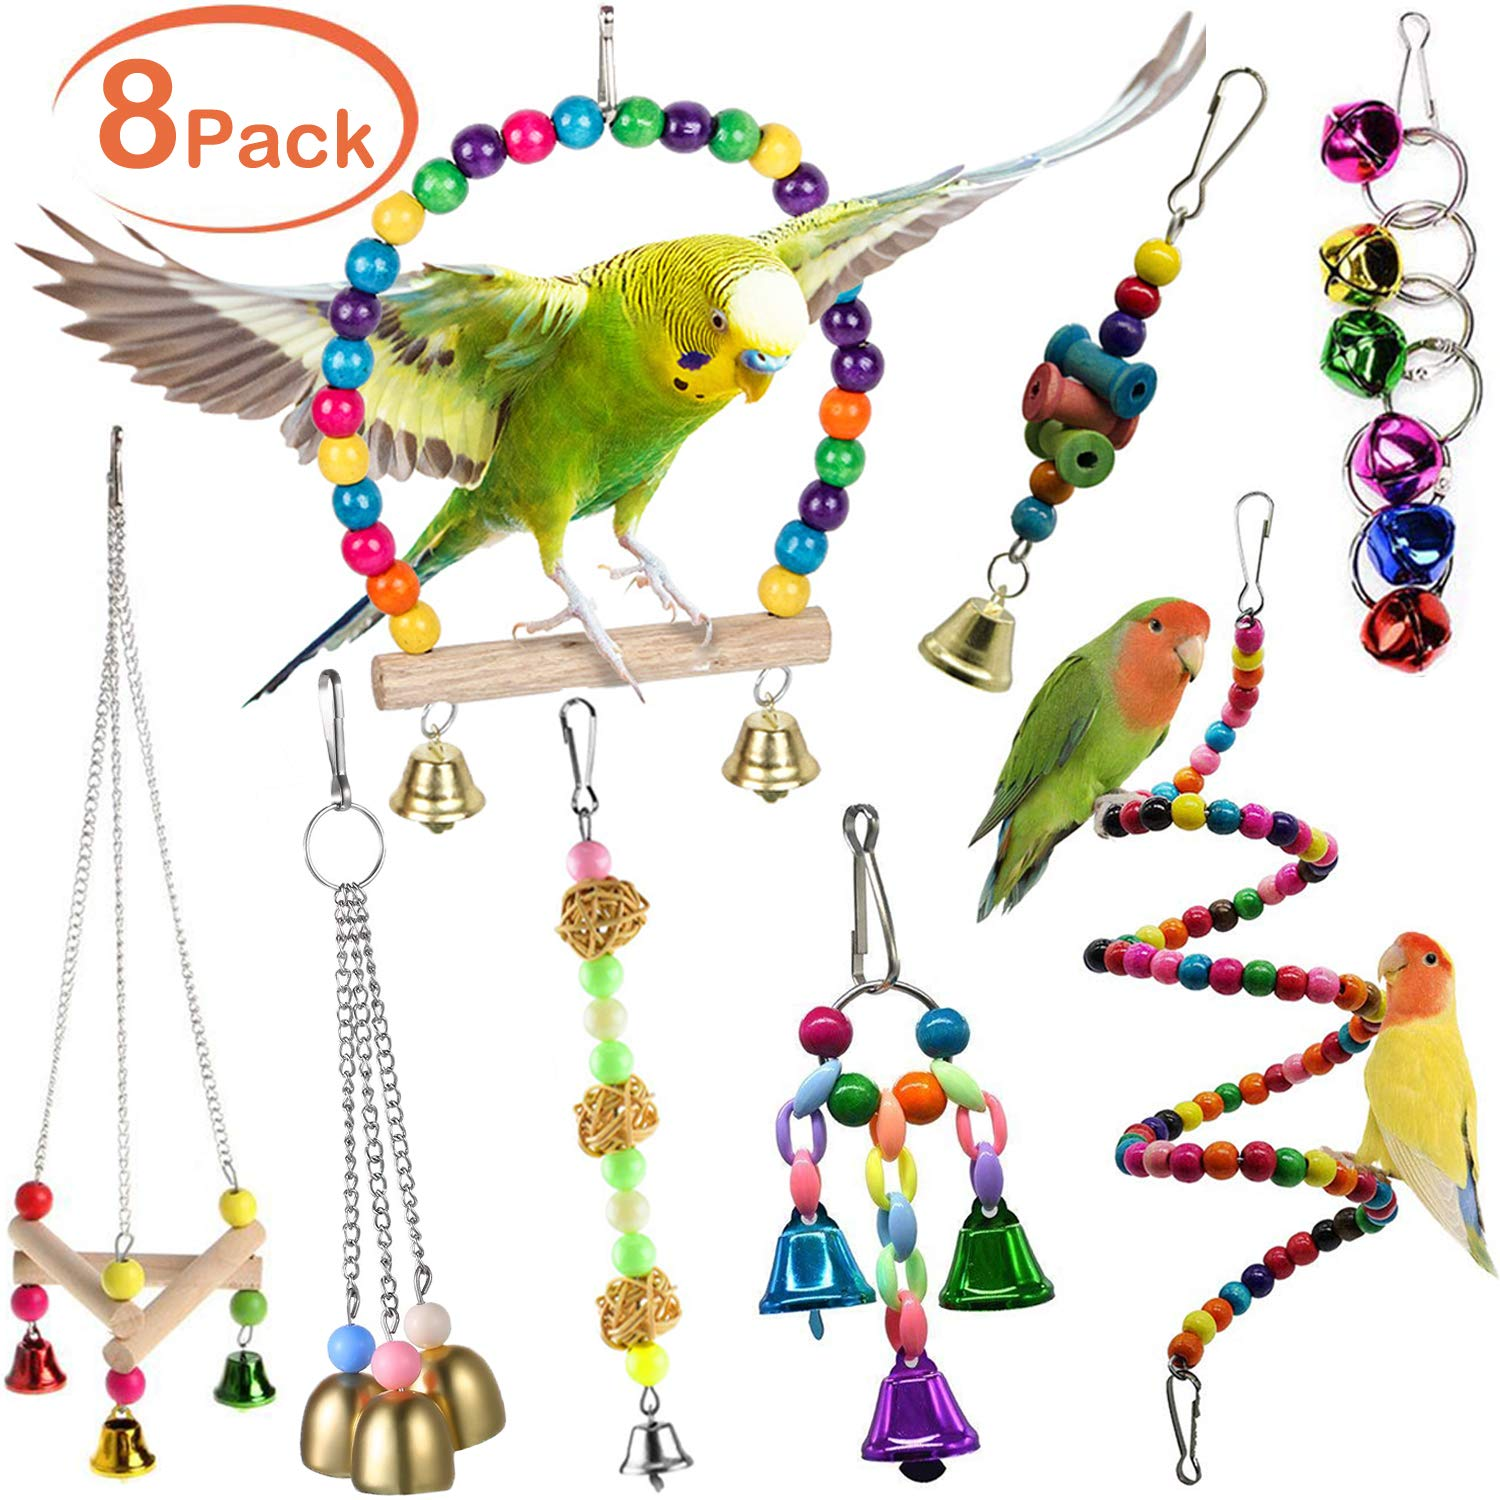 Joso Bird Swing Toy Set, Parrot Bird Toys Pet Bird Cage Hanging Bell, Colorful Chowing Hanging Swing Hammock Toys for Parrots Parakeets Cockatiels Conures Love Birds Cages Decorative Accessories by Joso